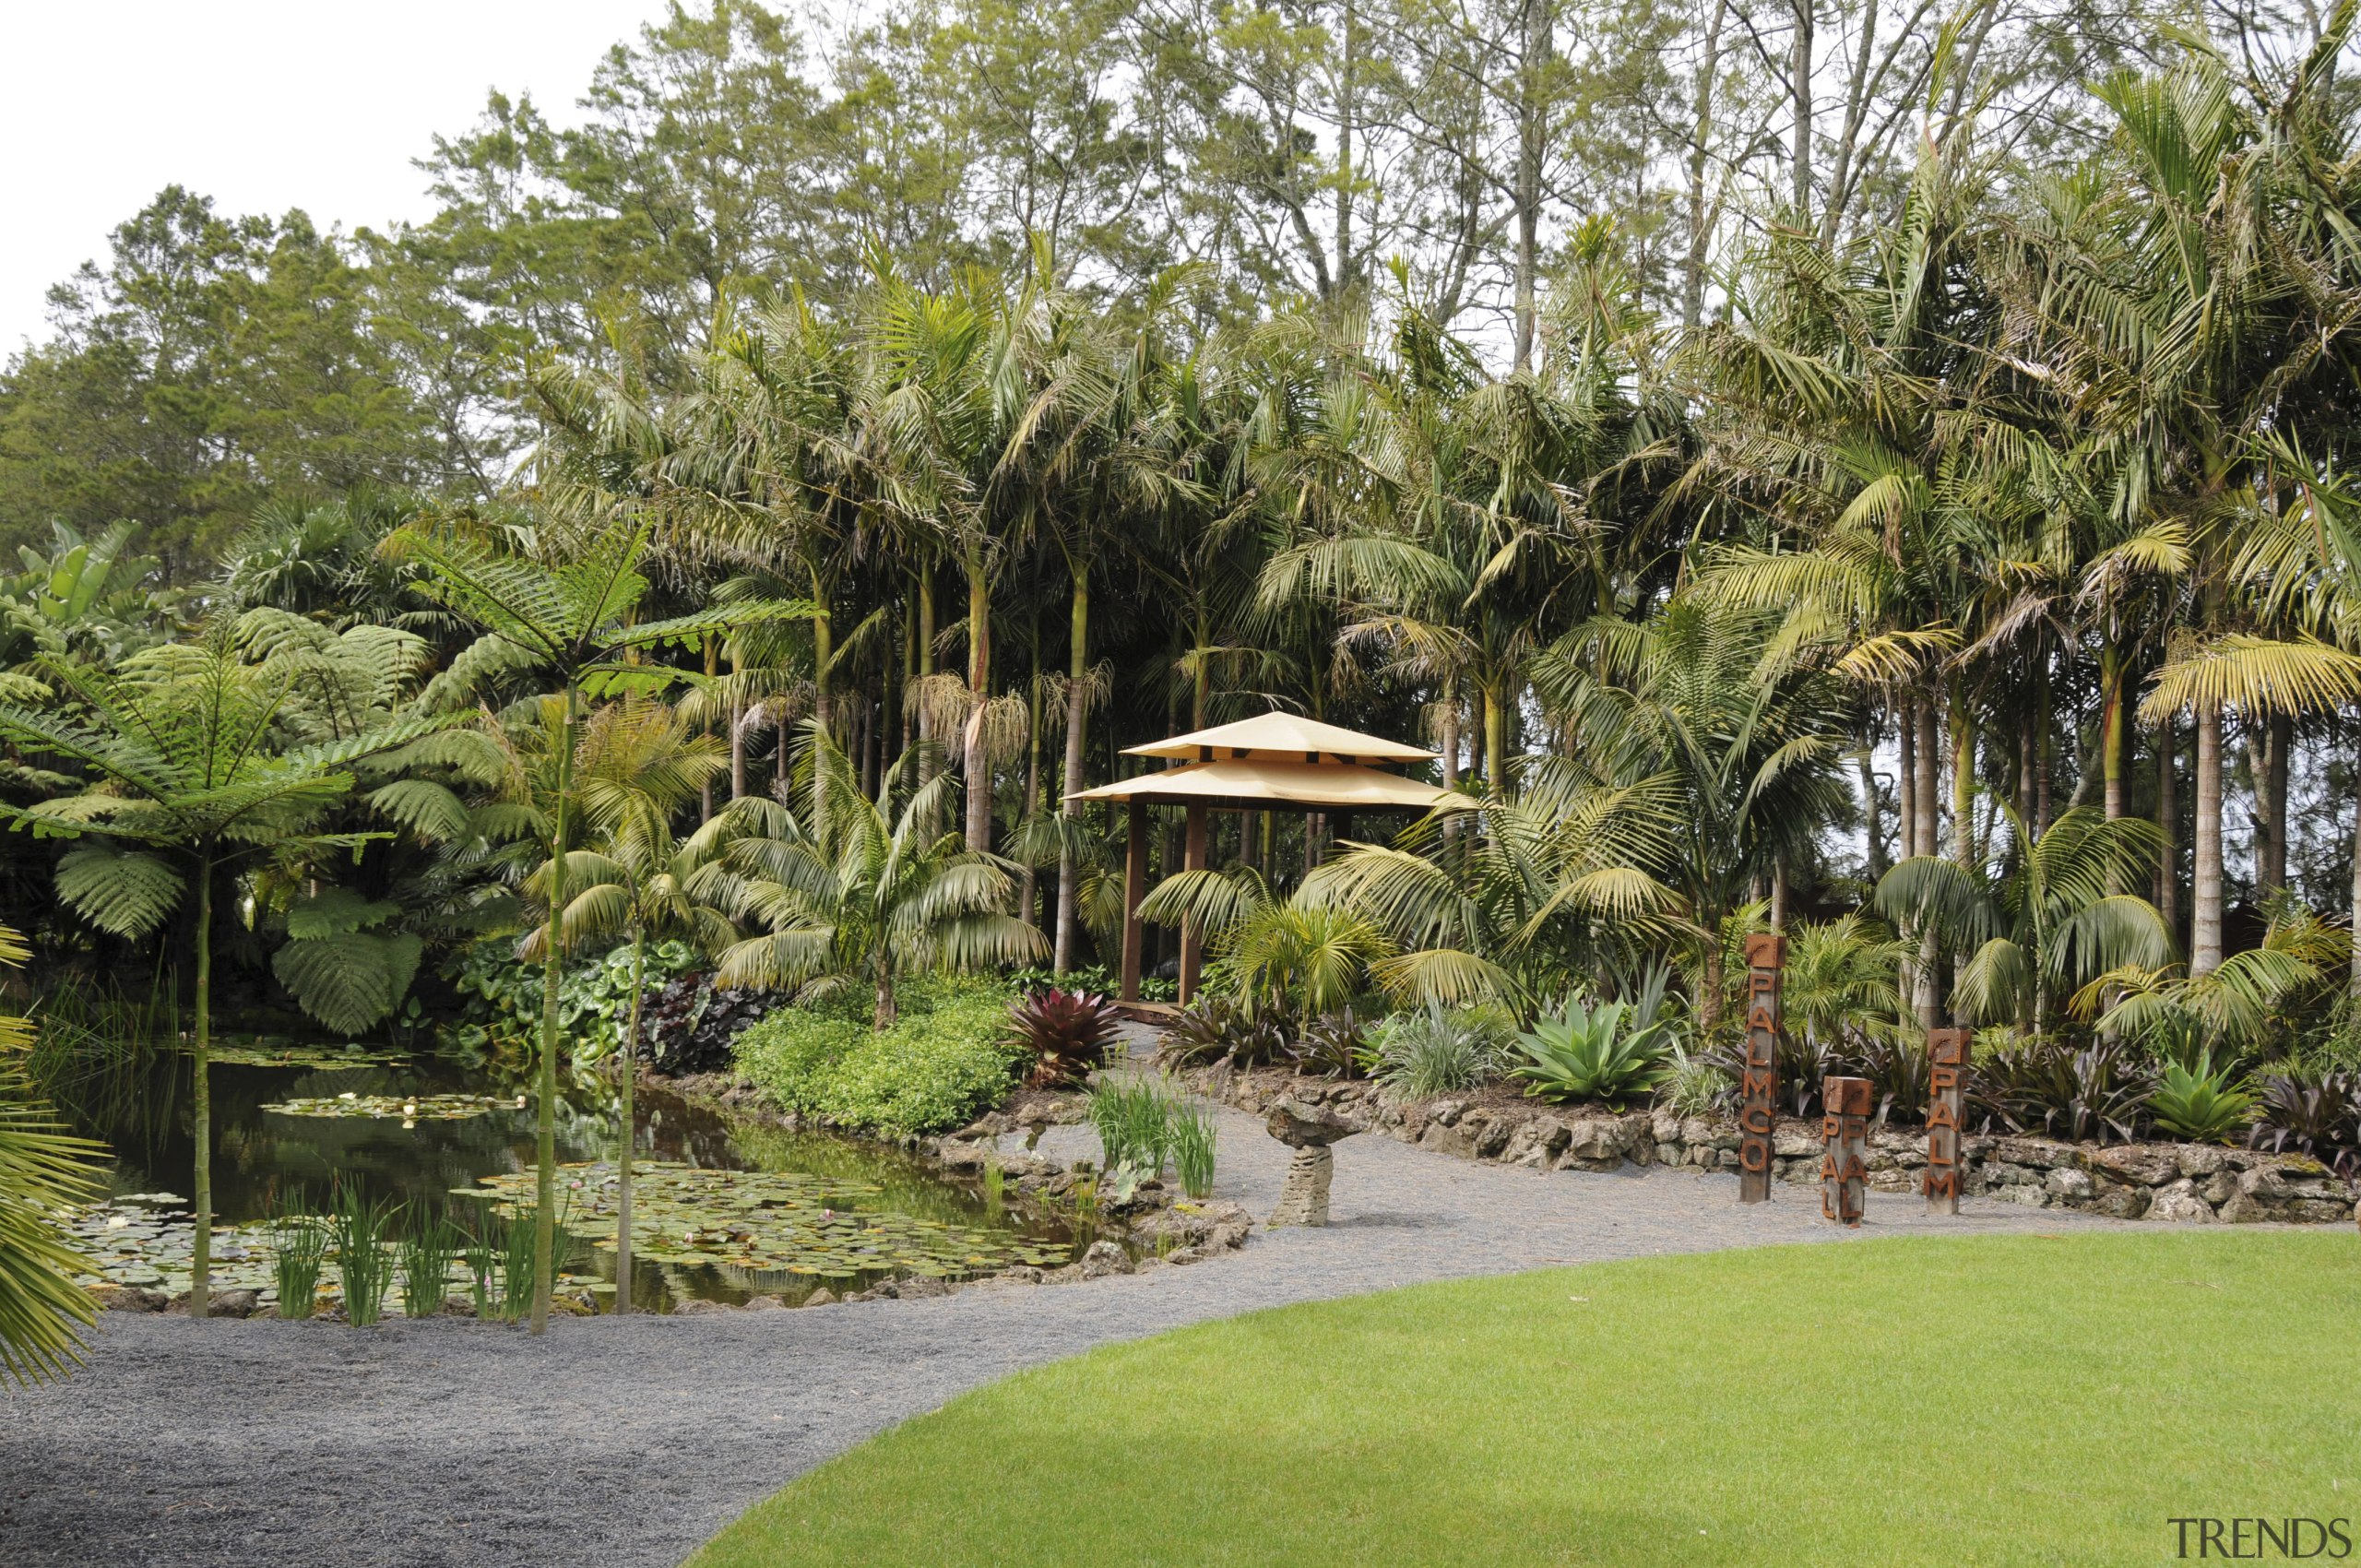 View of a designed and landscaped garden which arecales, backyard, botanical garden, estate, garden, grass, landscape, landscaping, lawn, outdoor structure, palm tree, plant, property, real estate, resort, tree, vegetation, yard, brown